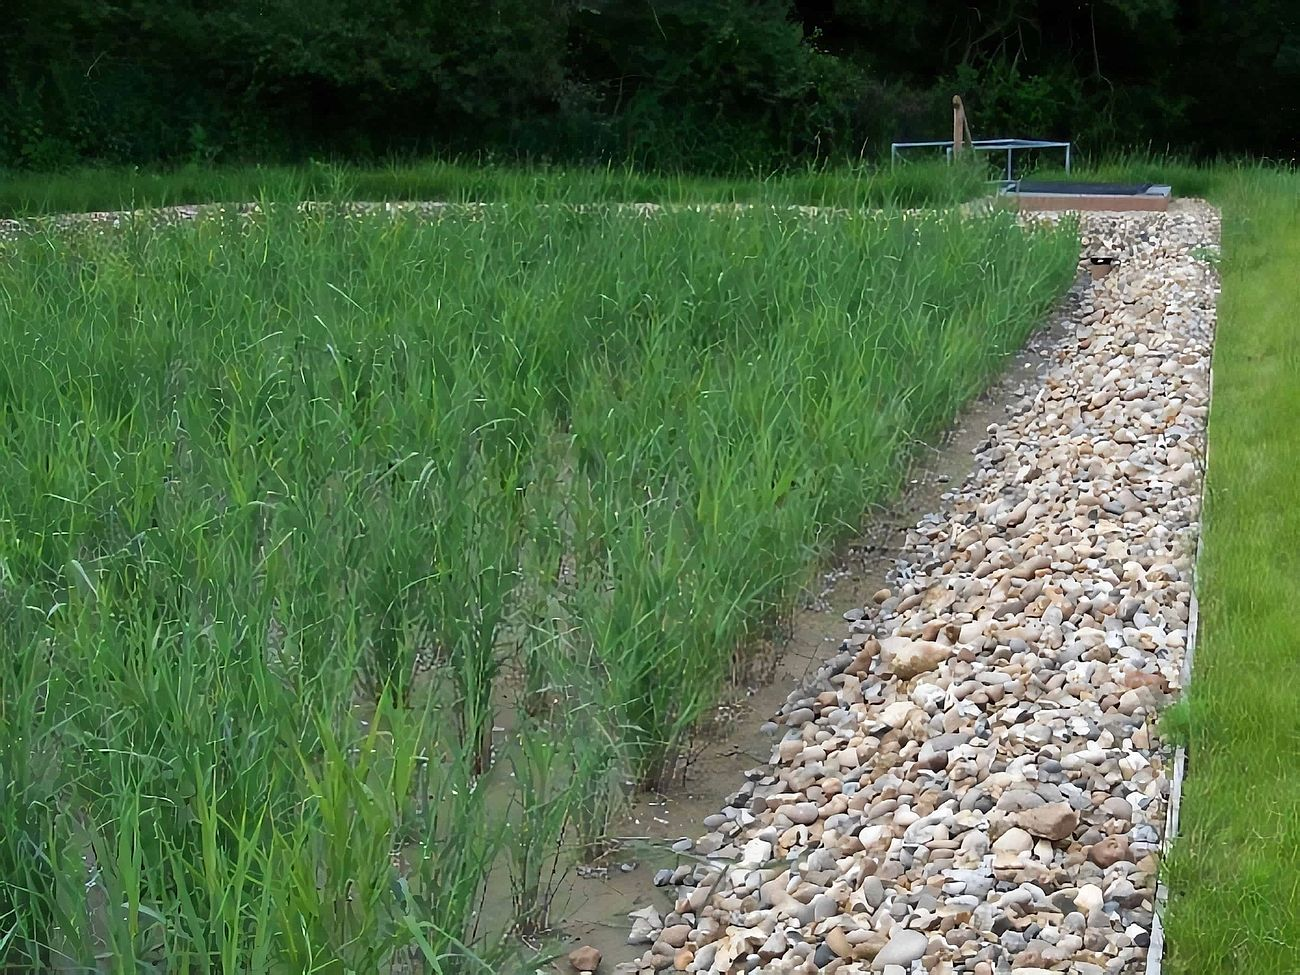 Brickendon Waste Water Treatment Works - Project carried out by Eco~tech Systems in Hertfordshire. Different view.